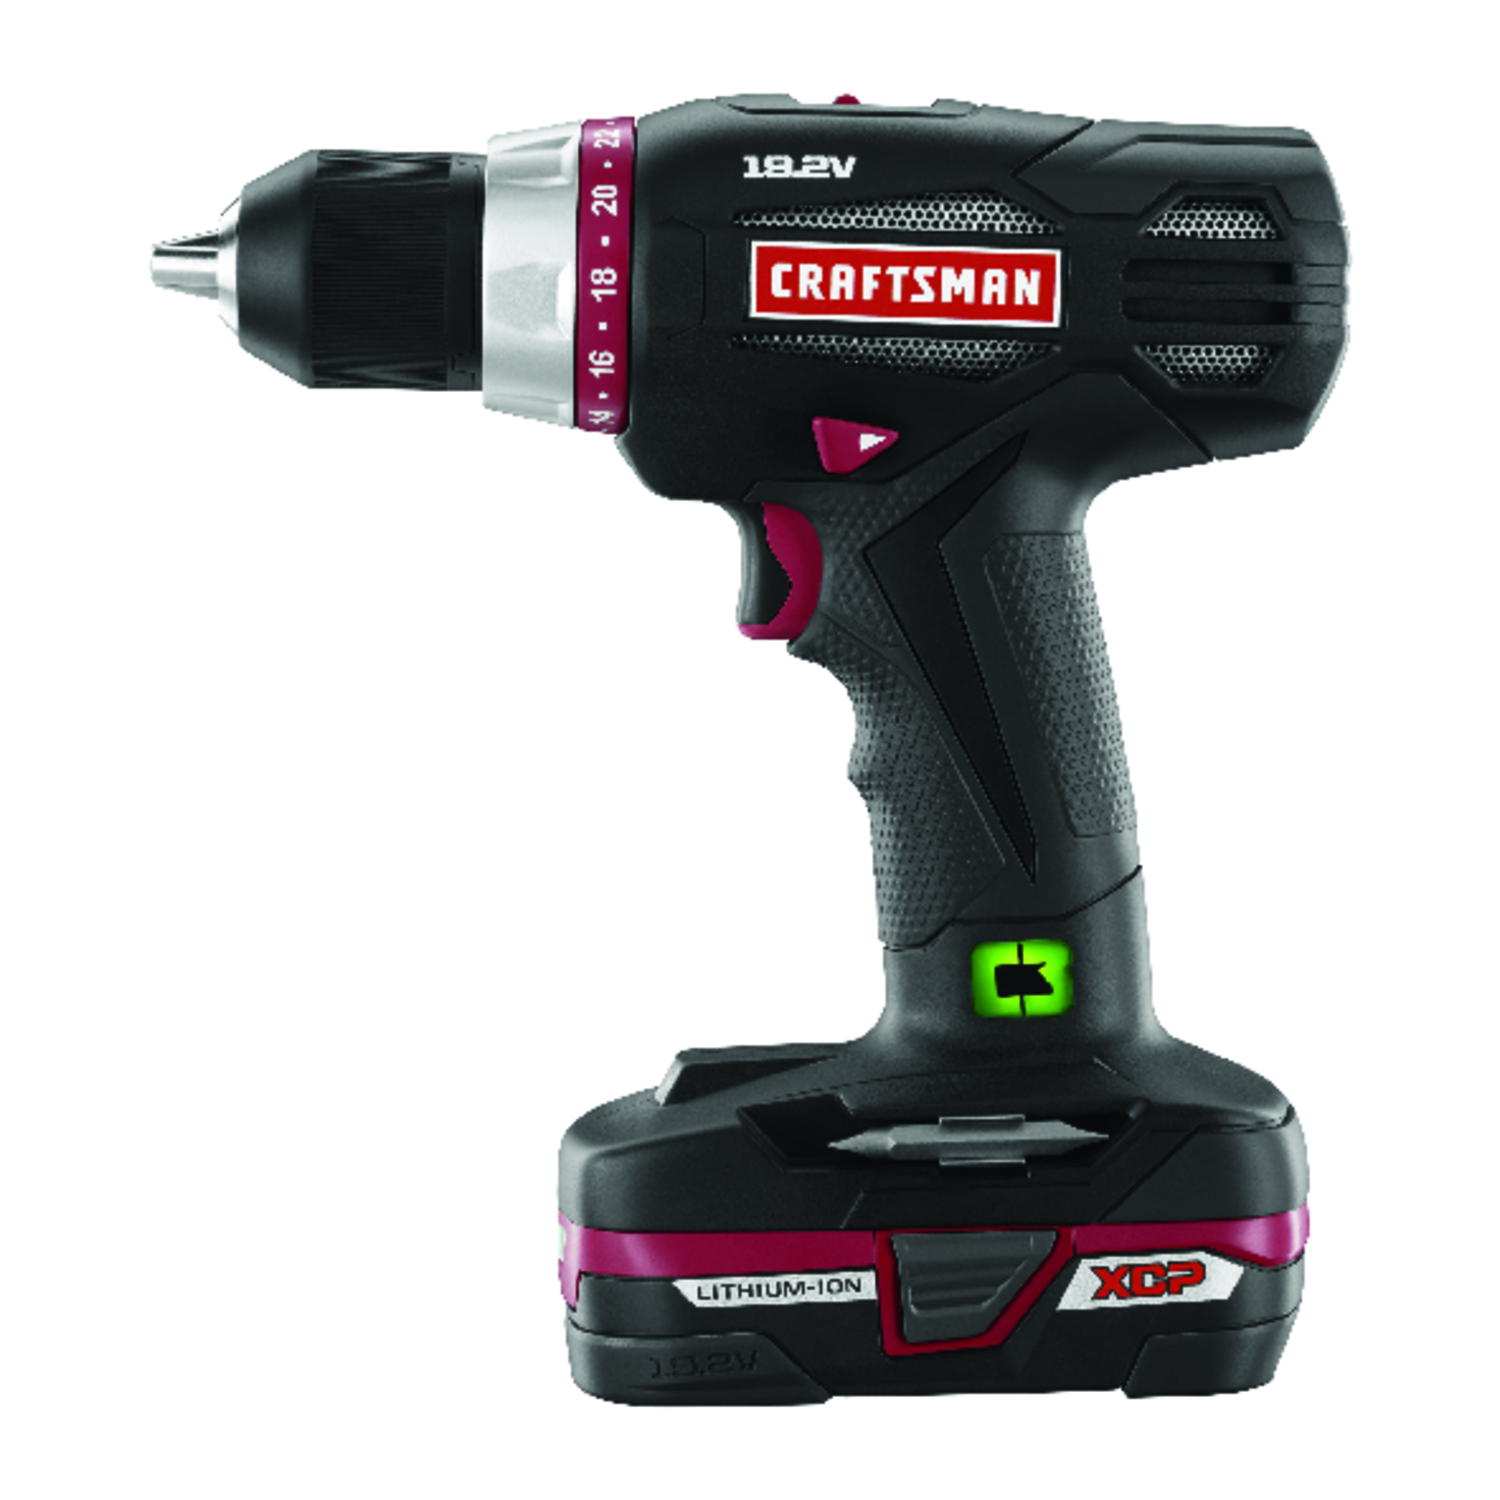 Craftsman  C3  19.2 volts 1/2 in. Brushless Cordless Drill  Kit 1600 rpm 2